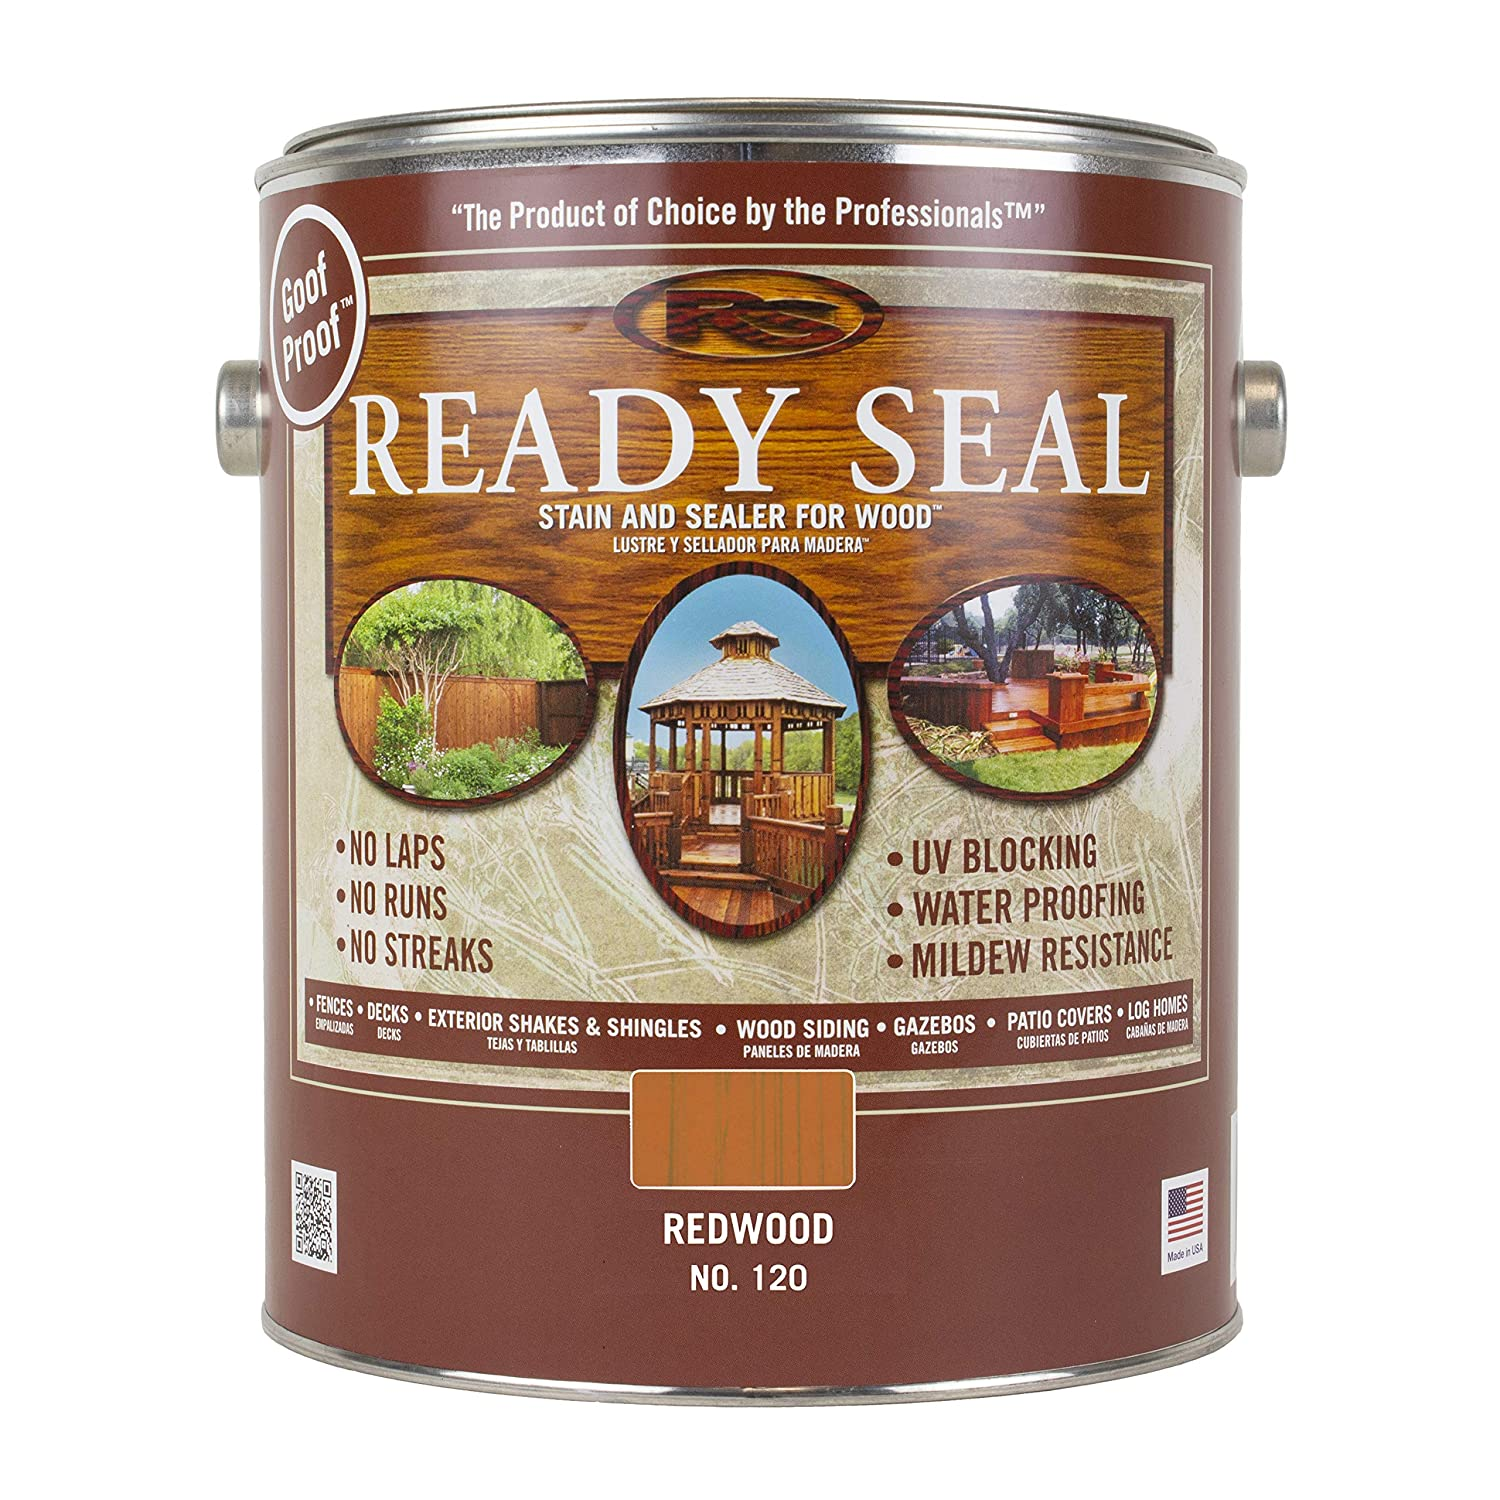 Ready Seal Redwood Exterior Wood Stain and Sealer Image